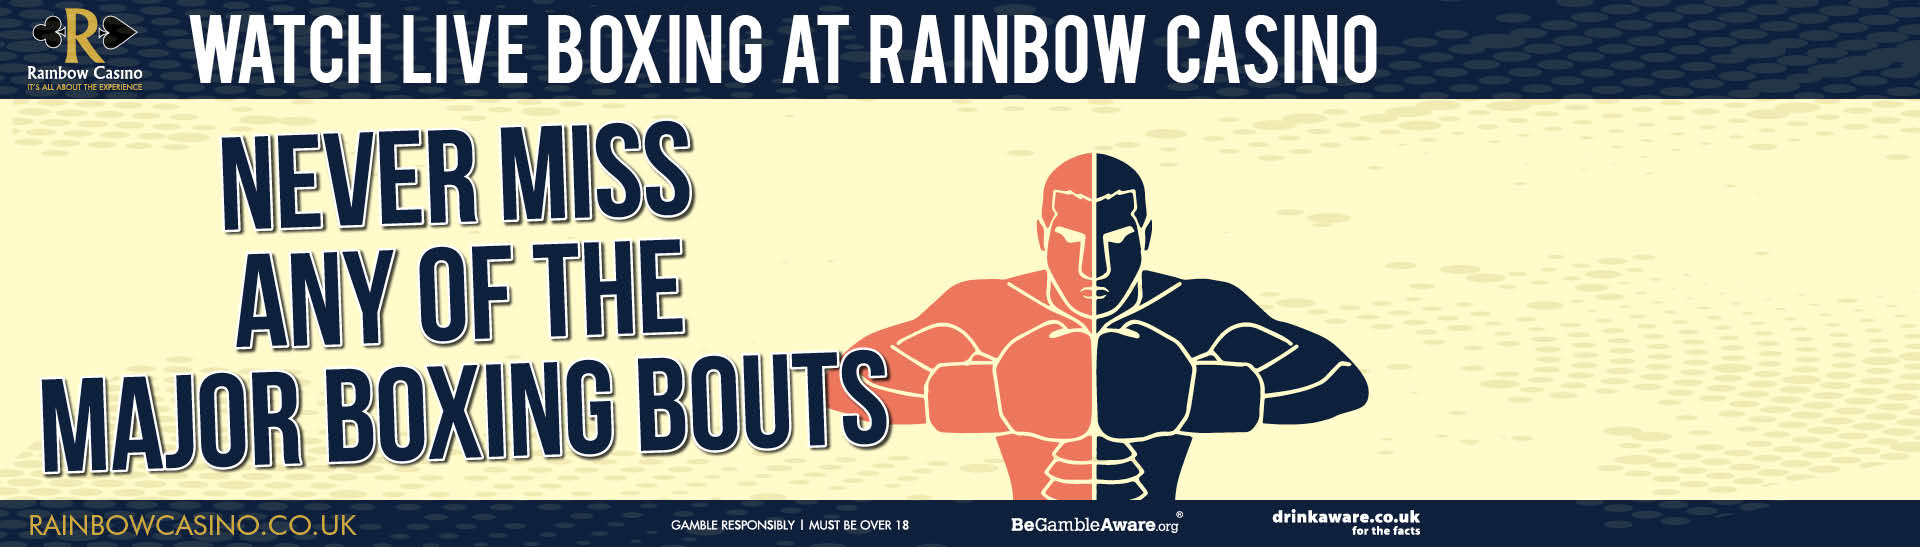 Rainbow Boxing Generic Web Graphic 1920X547.jpg